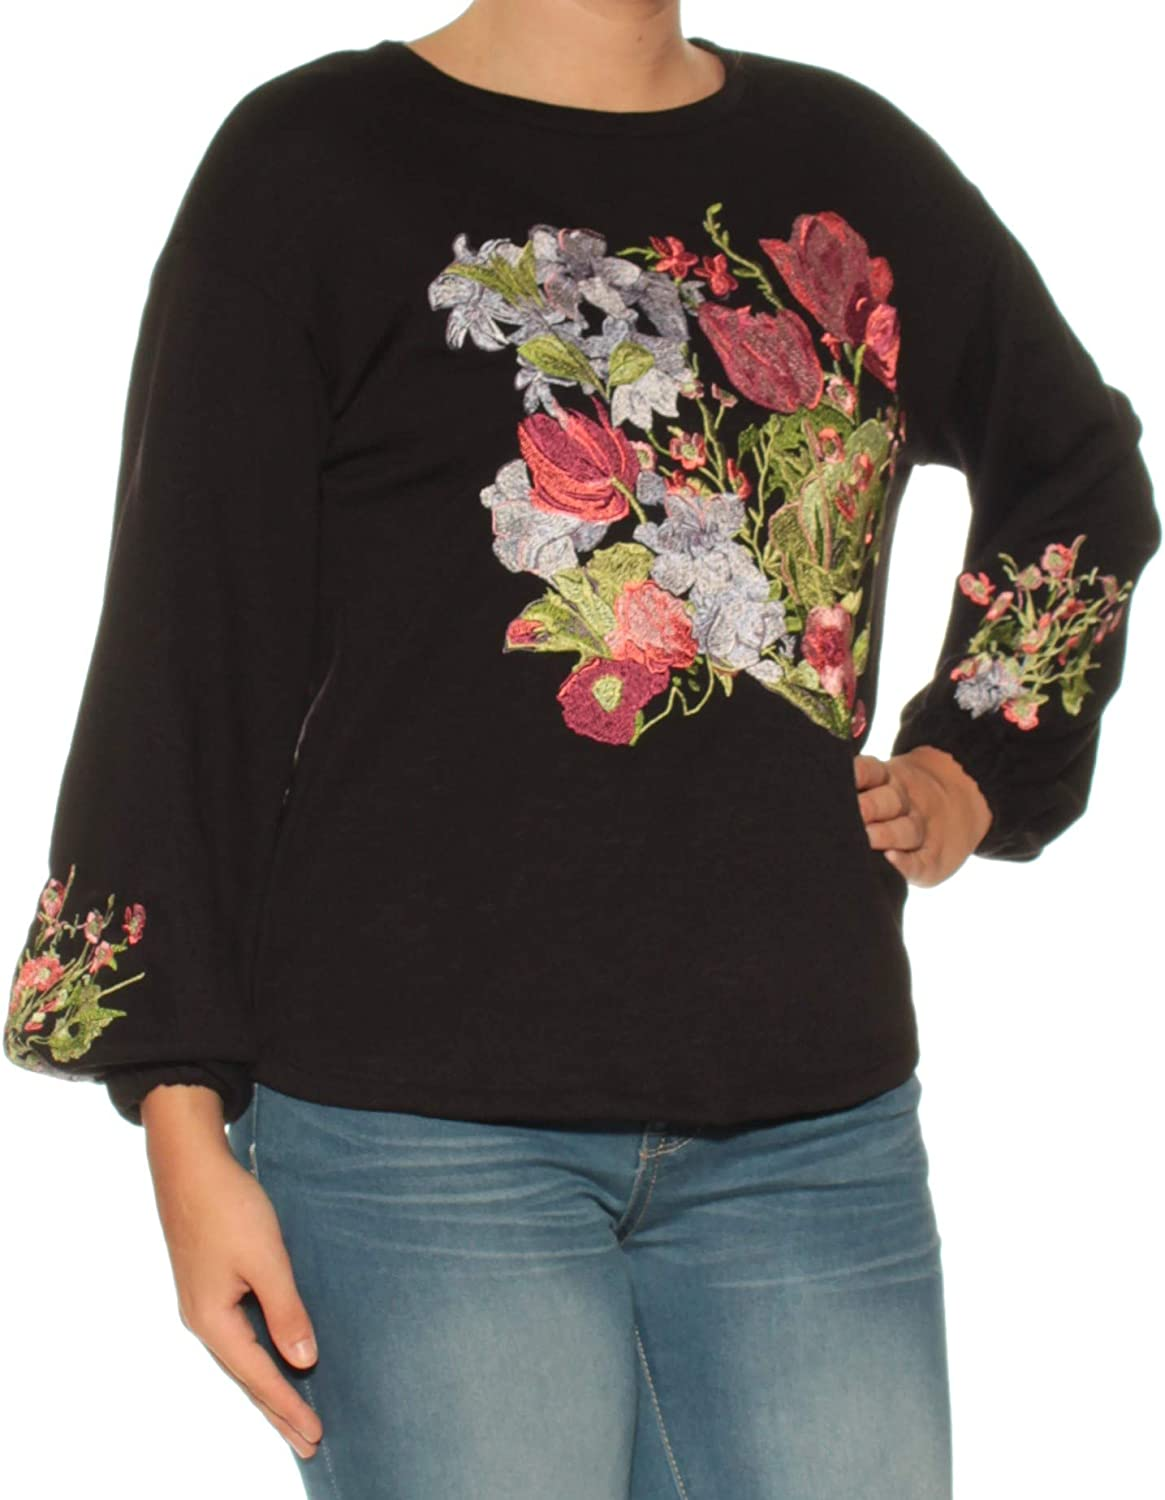 Inc 89 Womens New 1050 Black Embroidered Jewel Neck Long Sleeve Top S B+B